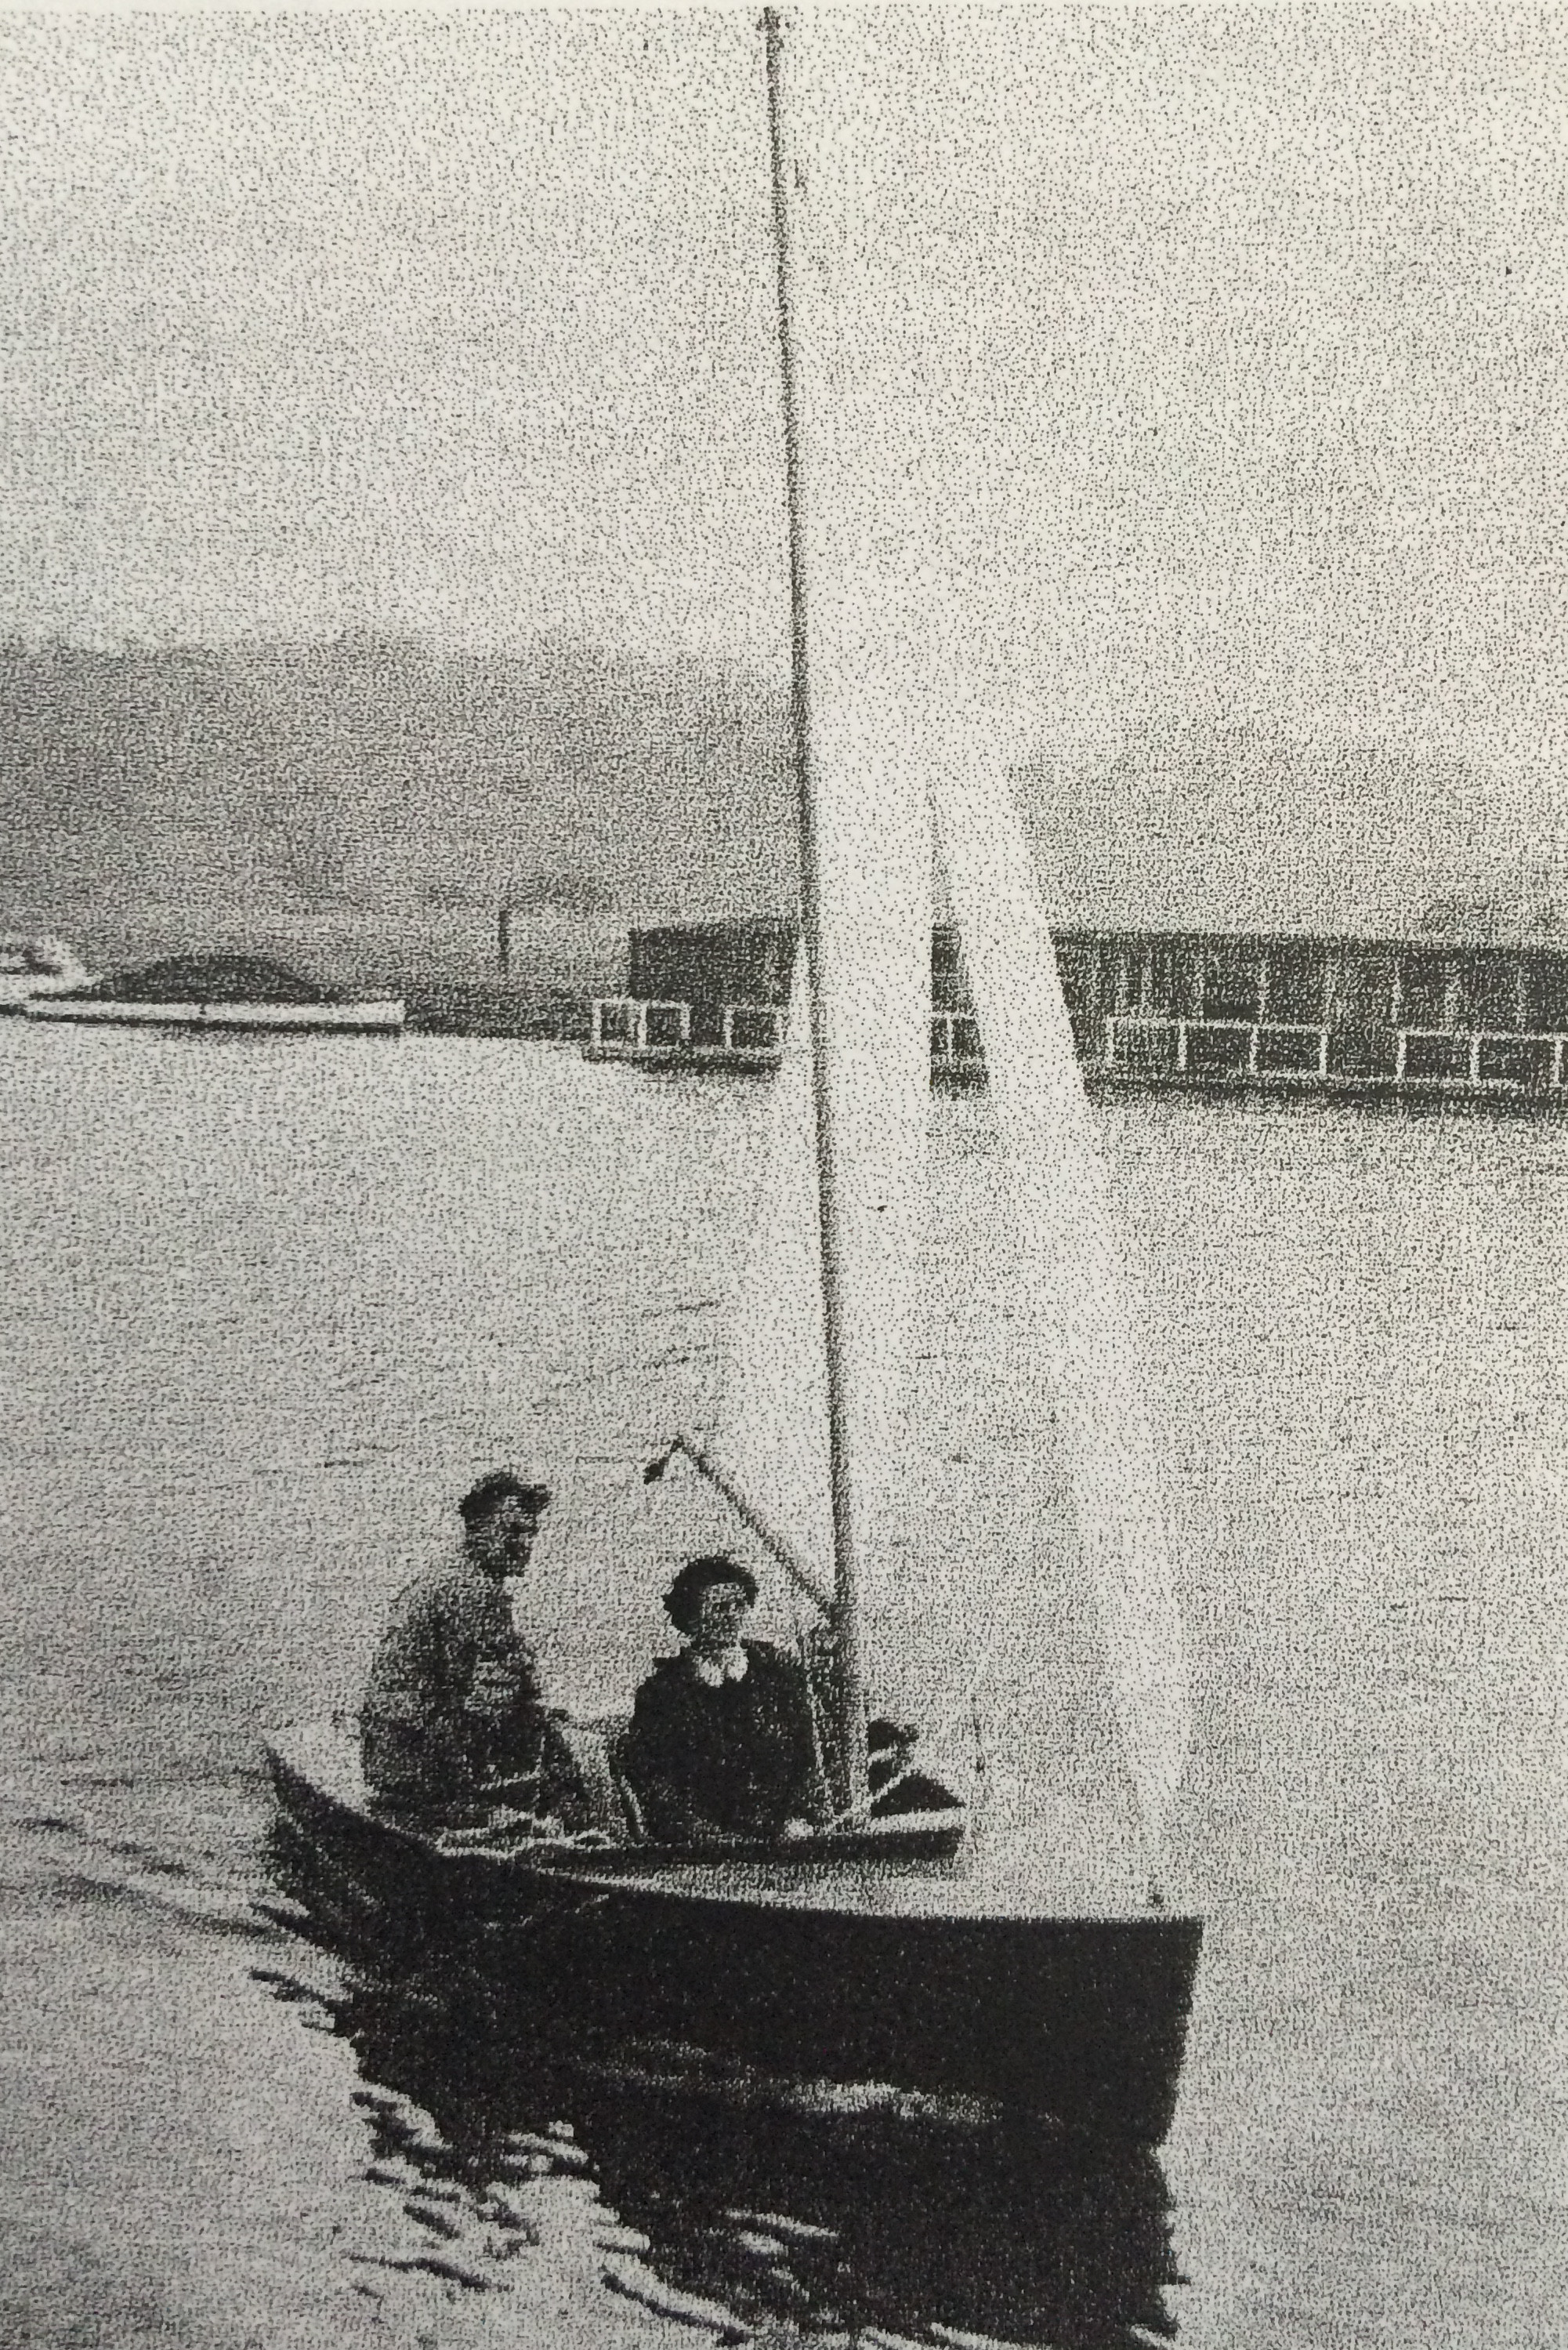 Dick Wyche and family sailing the prototype Graduate